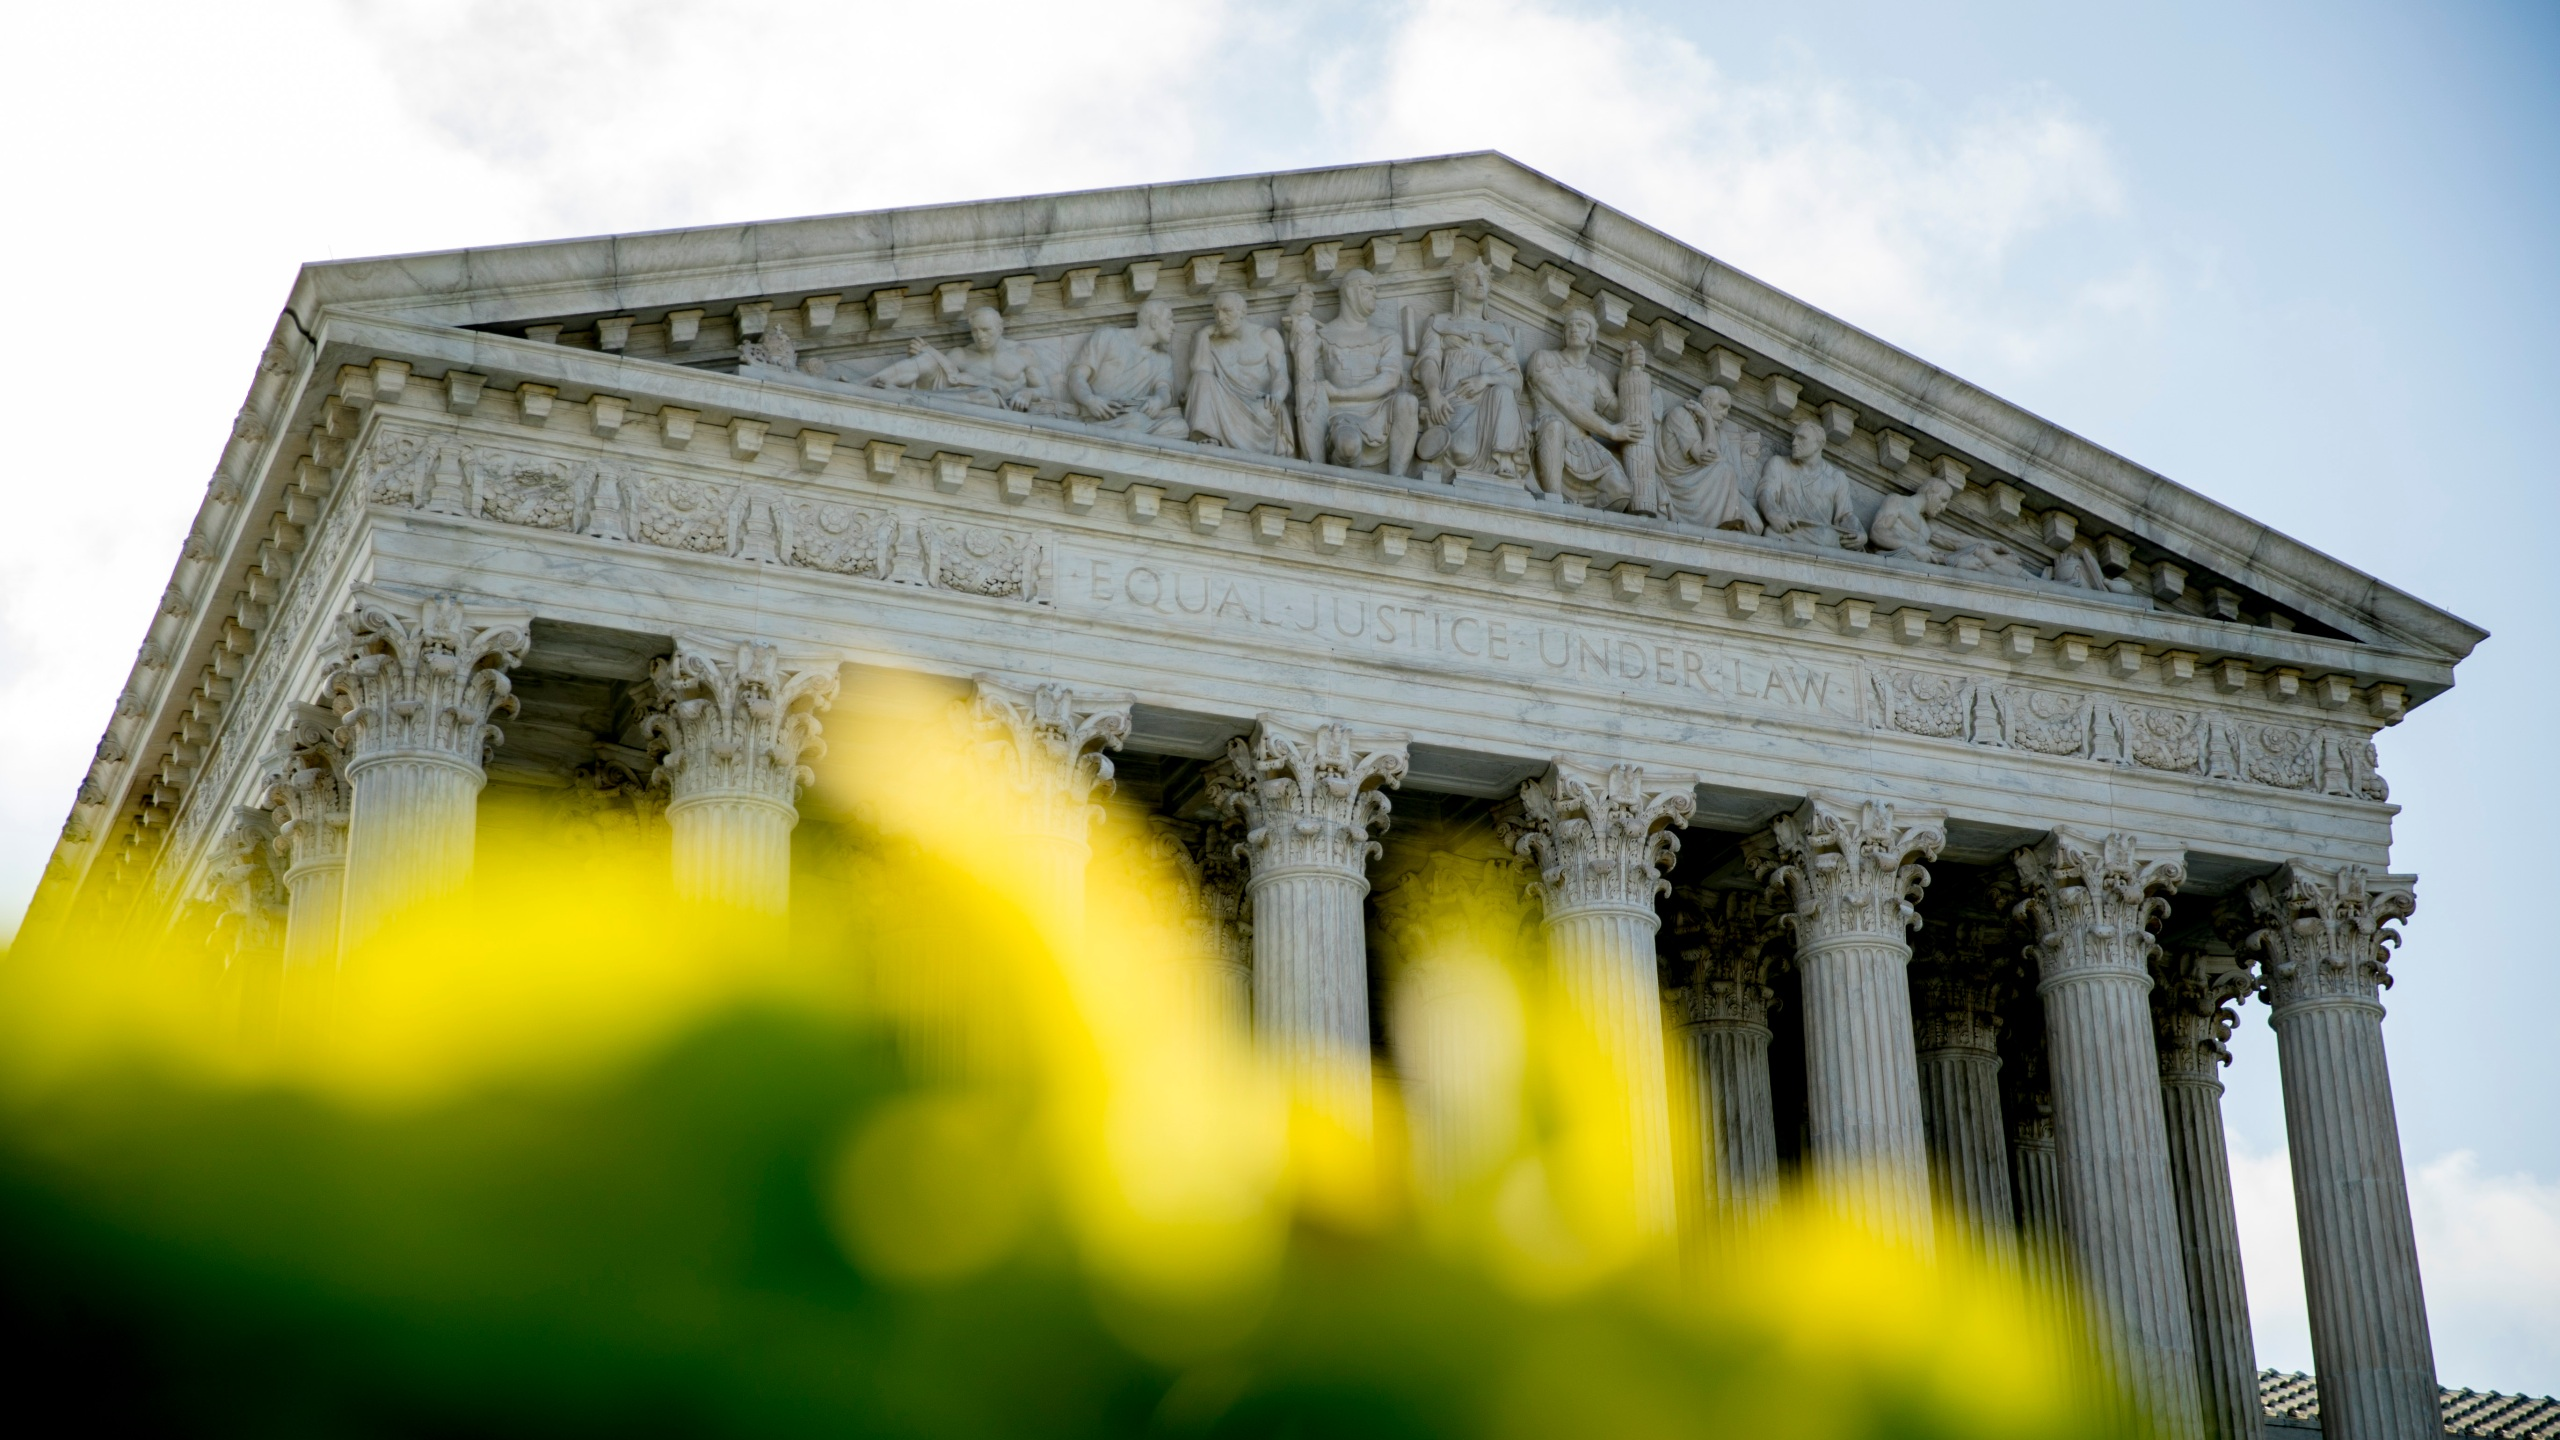 The Supreme Court building is seen on July 9, 2020, in Washington. (Andrew Harnik / Associated Press)